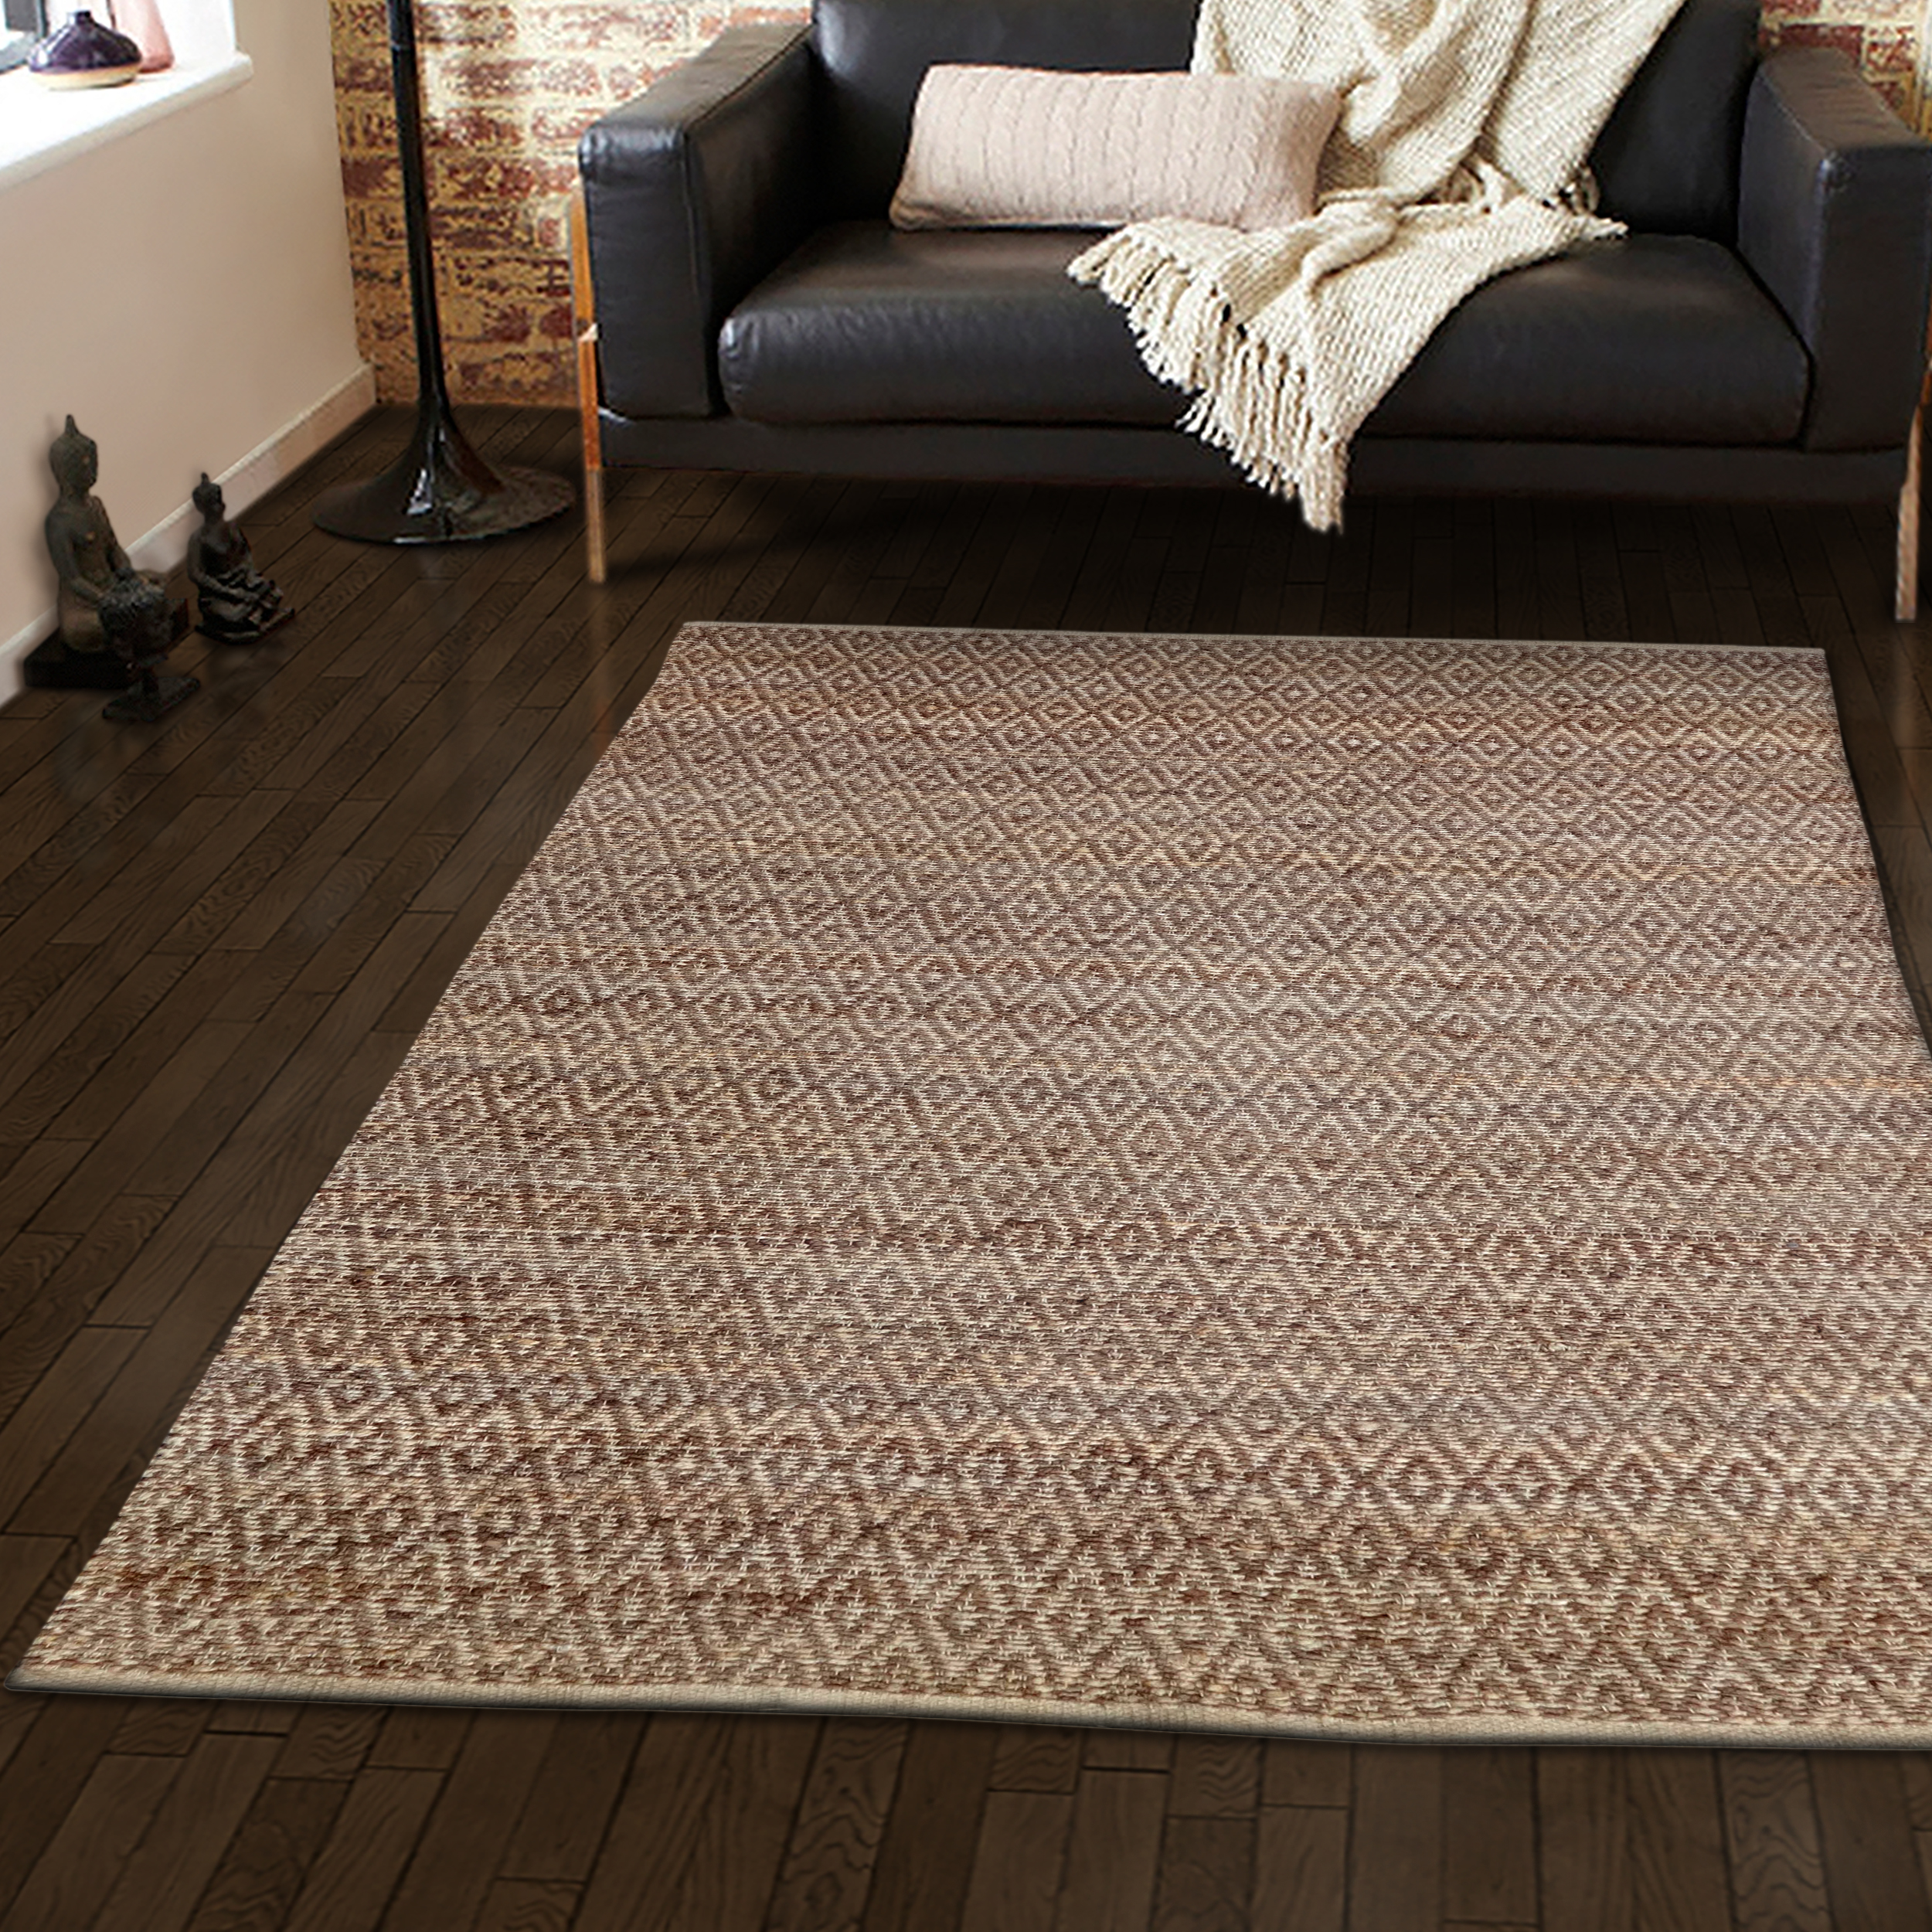 Natural Eco Friendly Hand Woven Jute Area Rug, 4 Colors